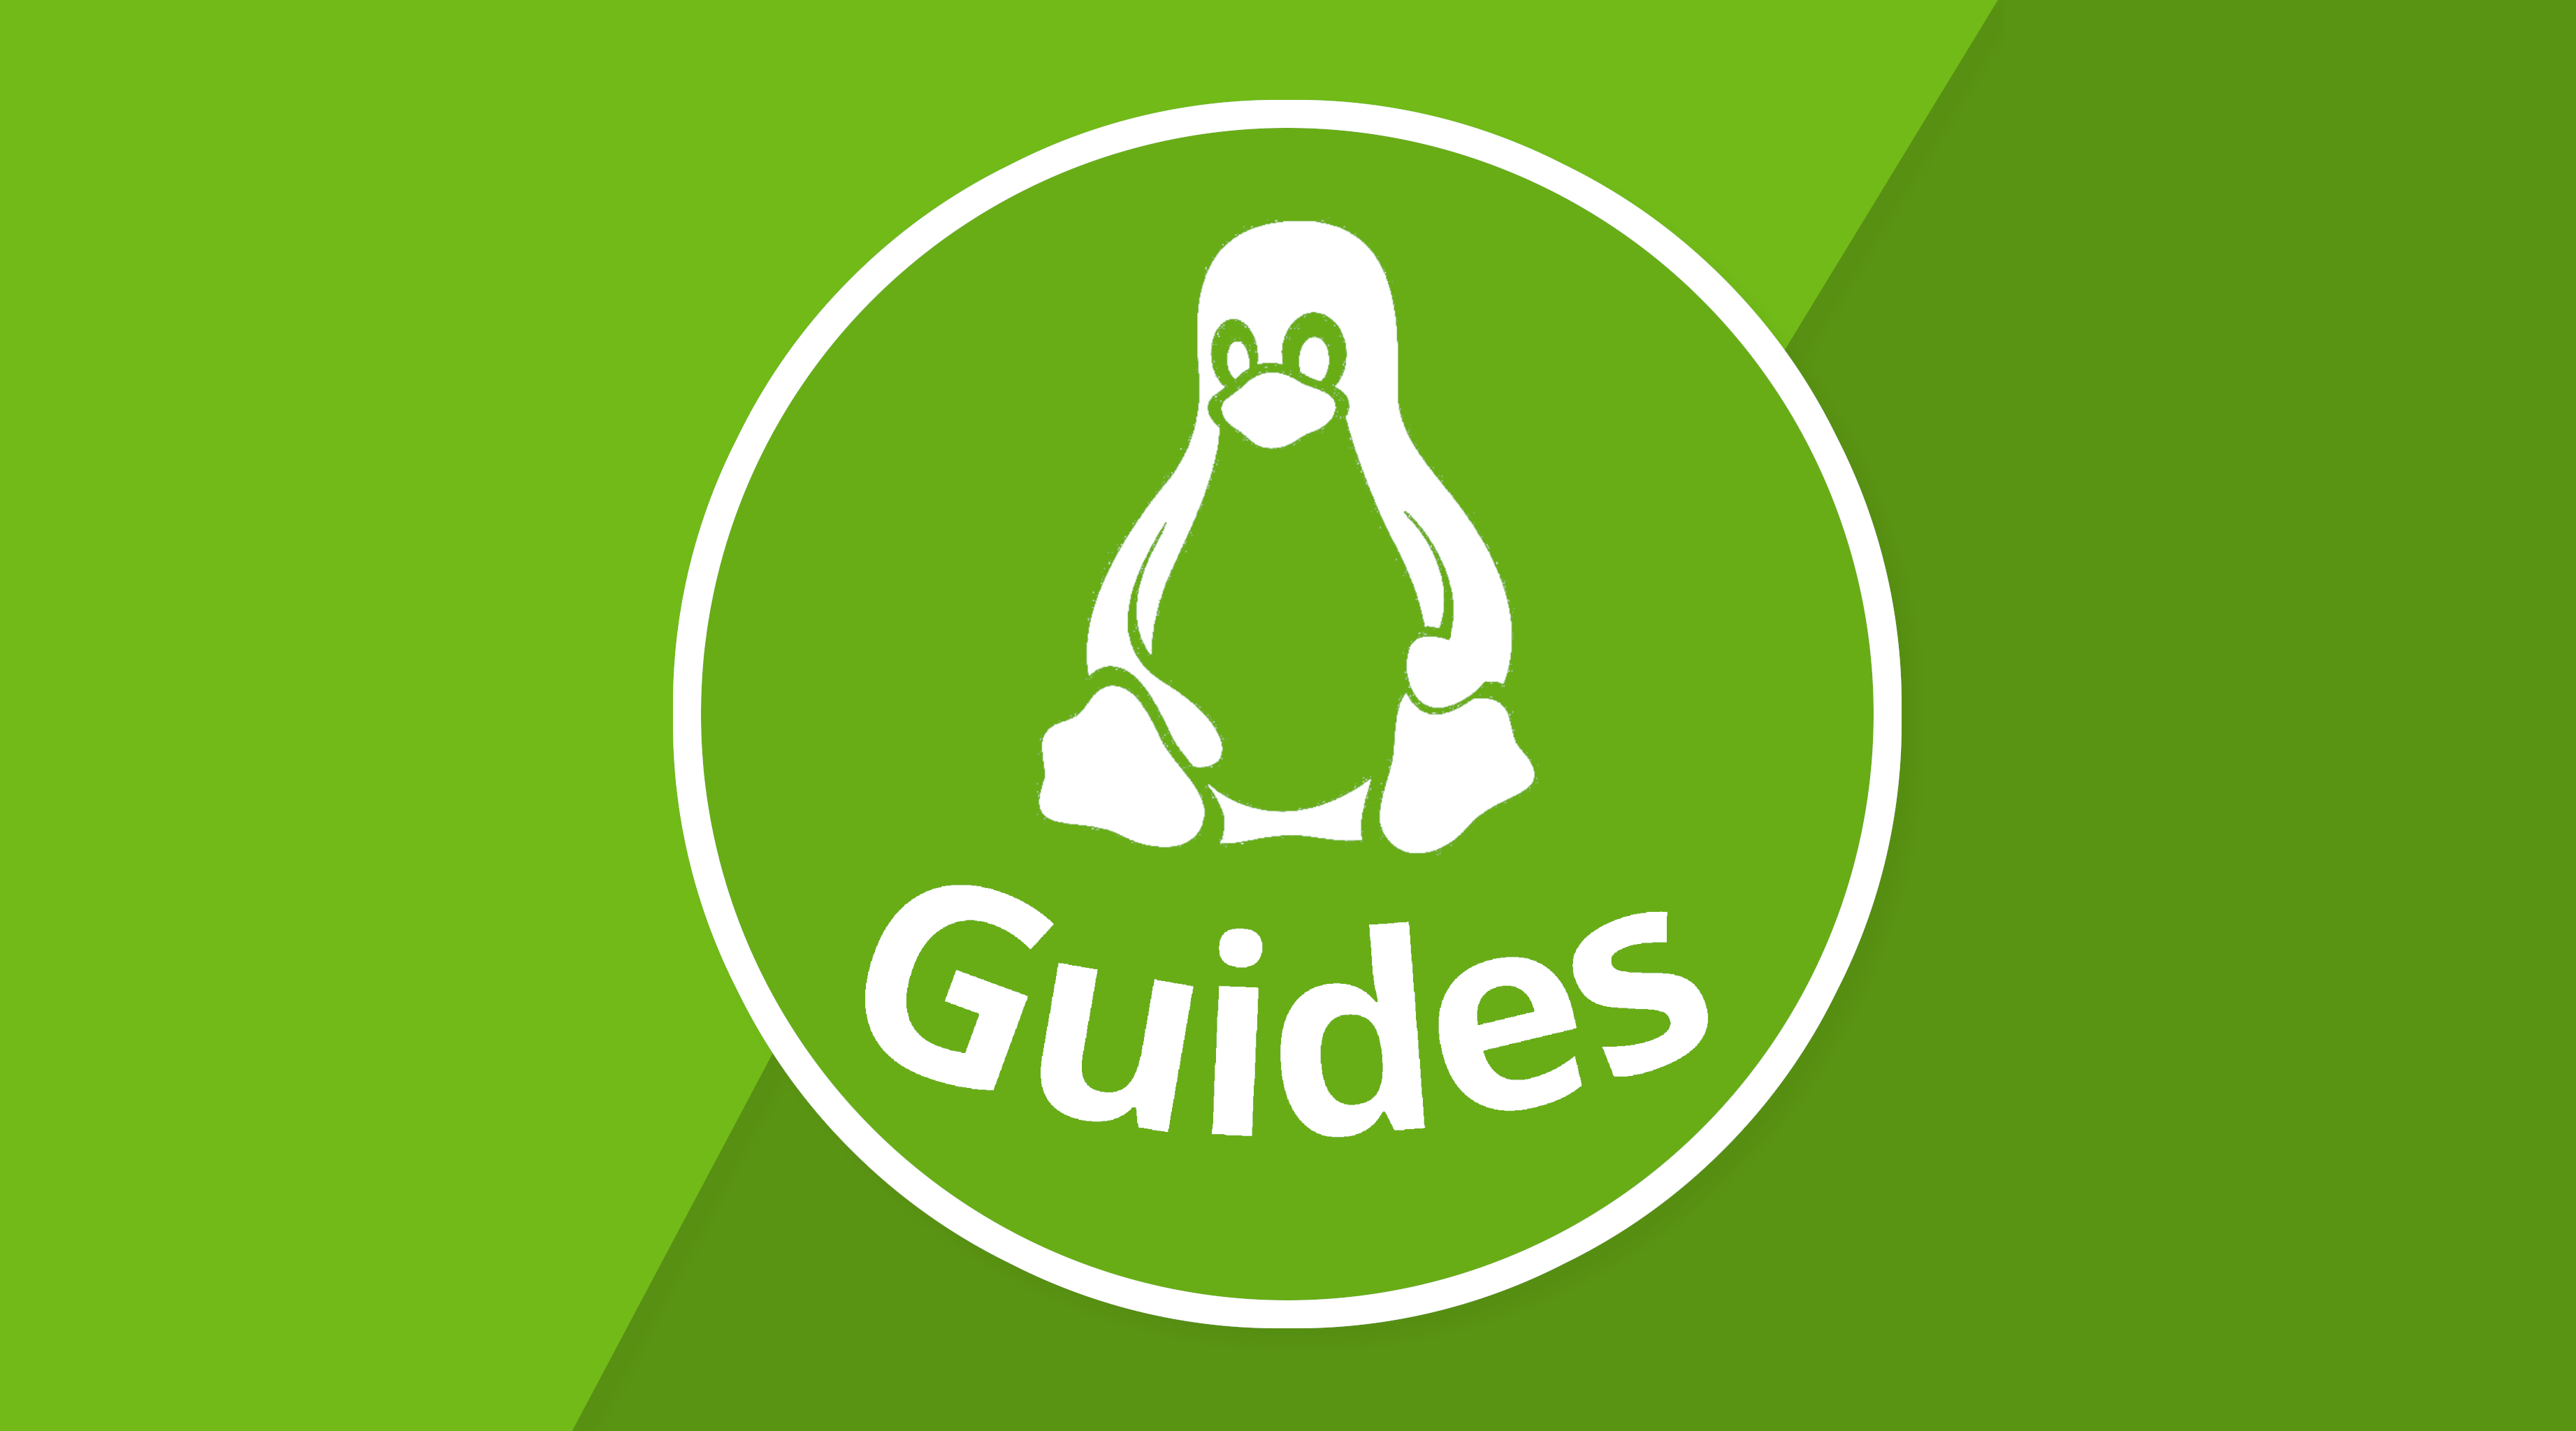 Logo von YouTube-Kanal Linux Guides